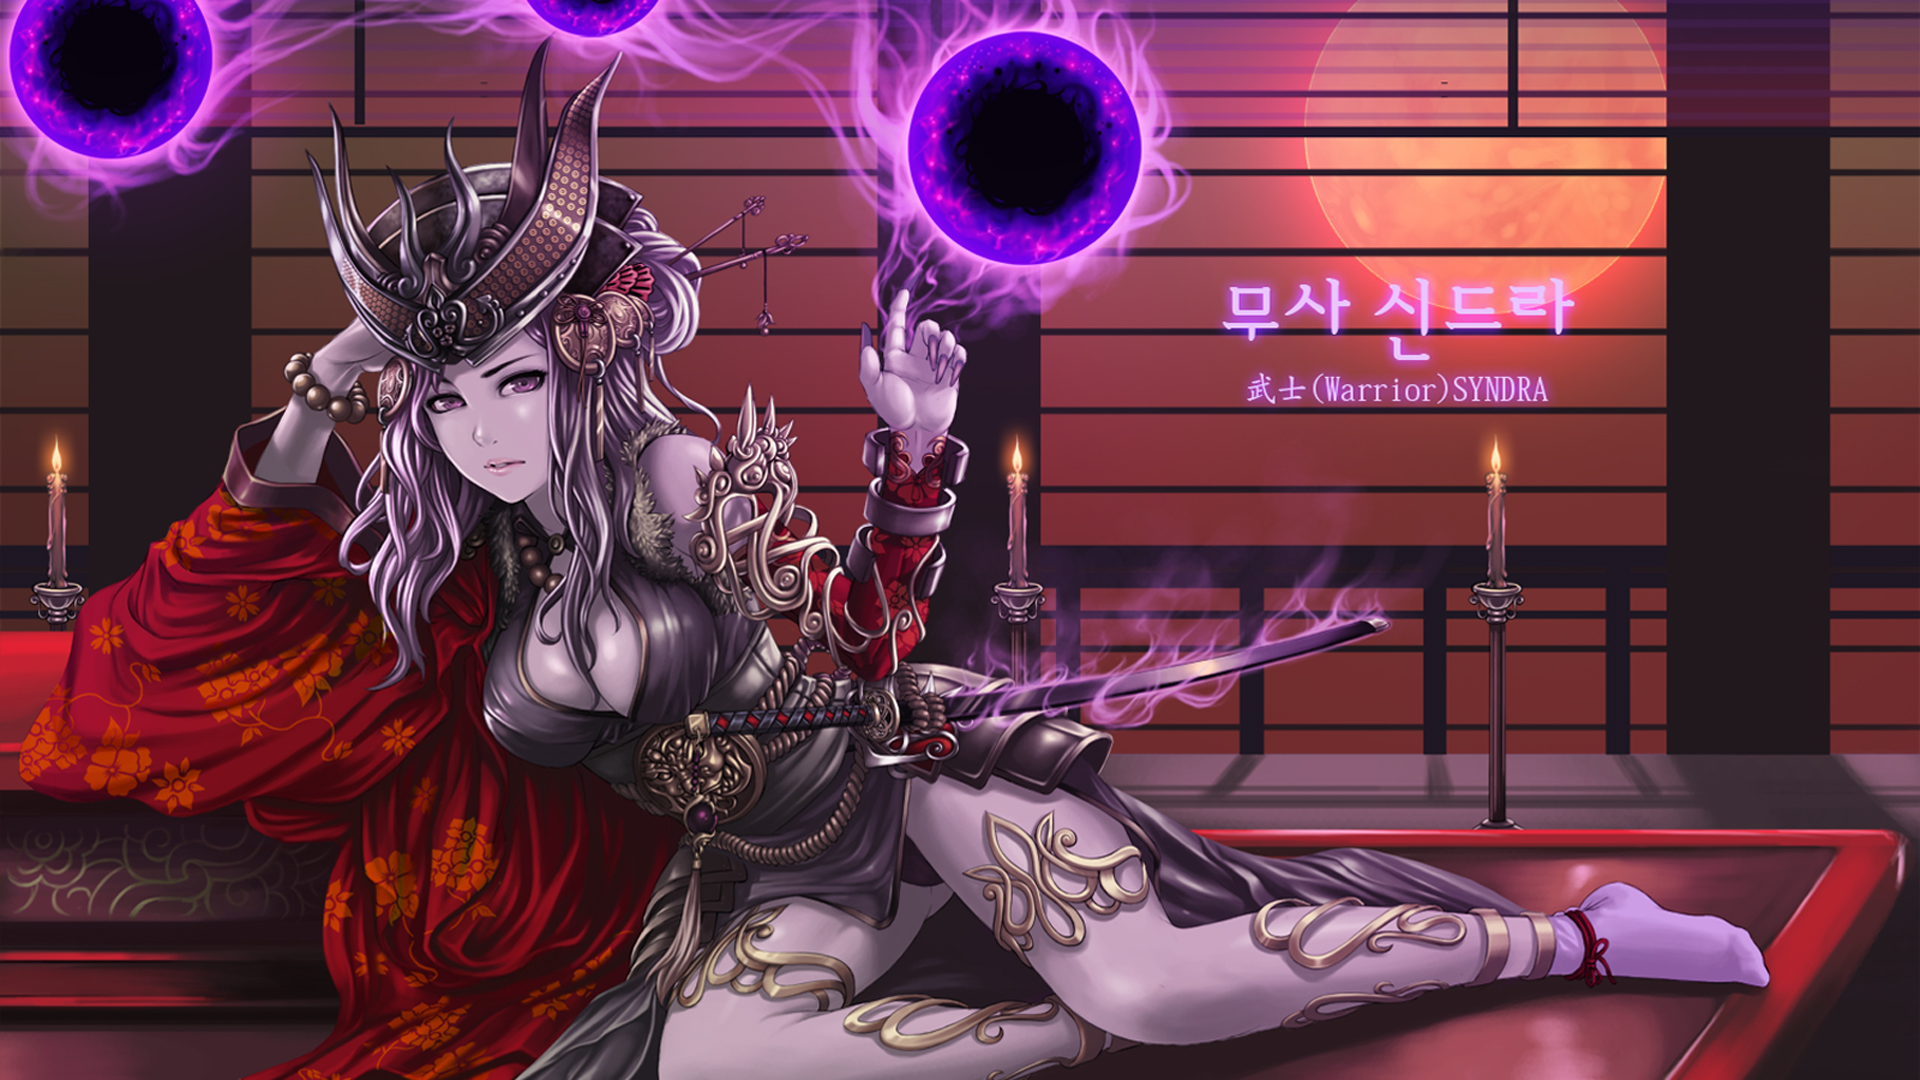 Warrior Syndra Art Wallpaper HD